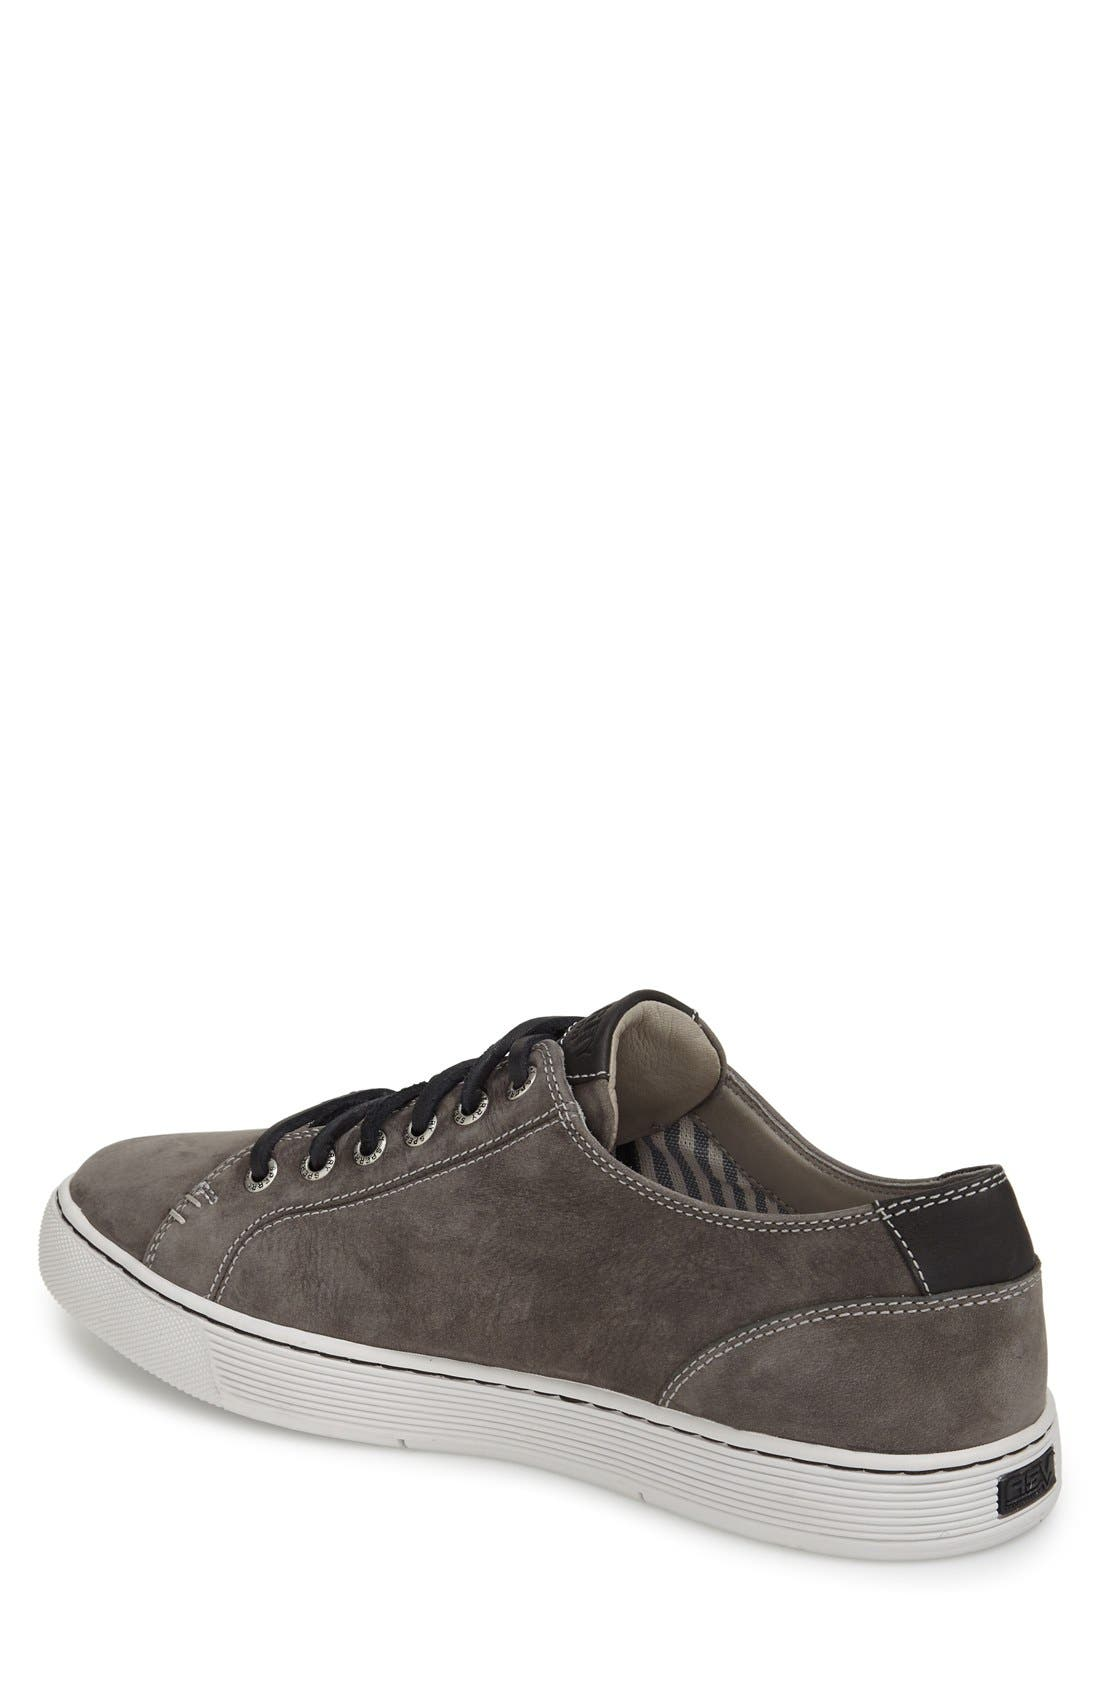 SPERRY, Gold Cup LLT Sneaker, Alternate thumbnail 6, color, GREY SUEDE